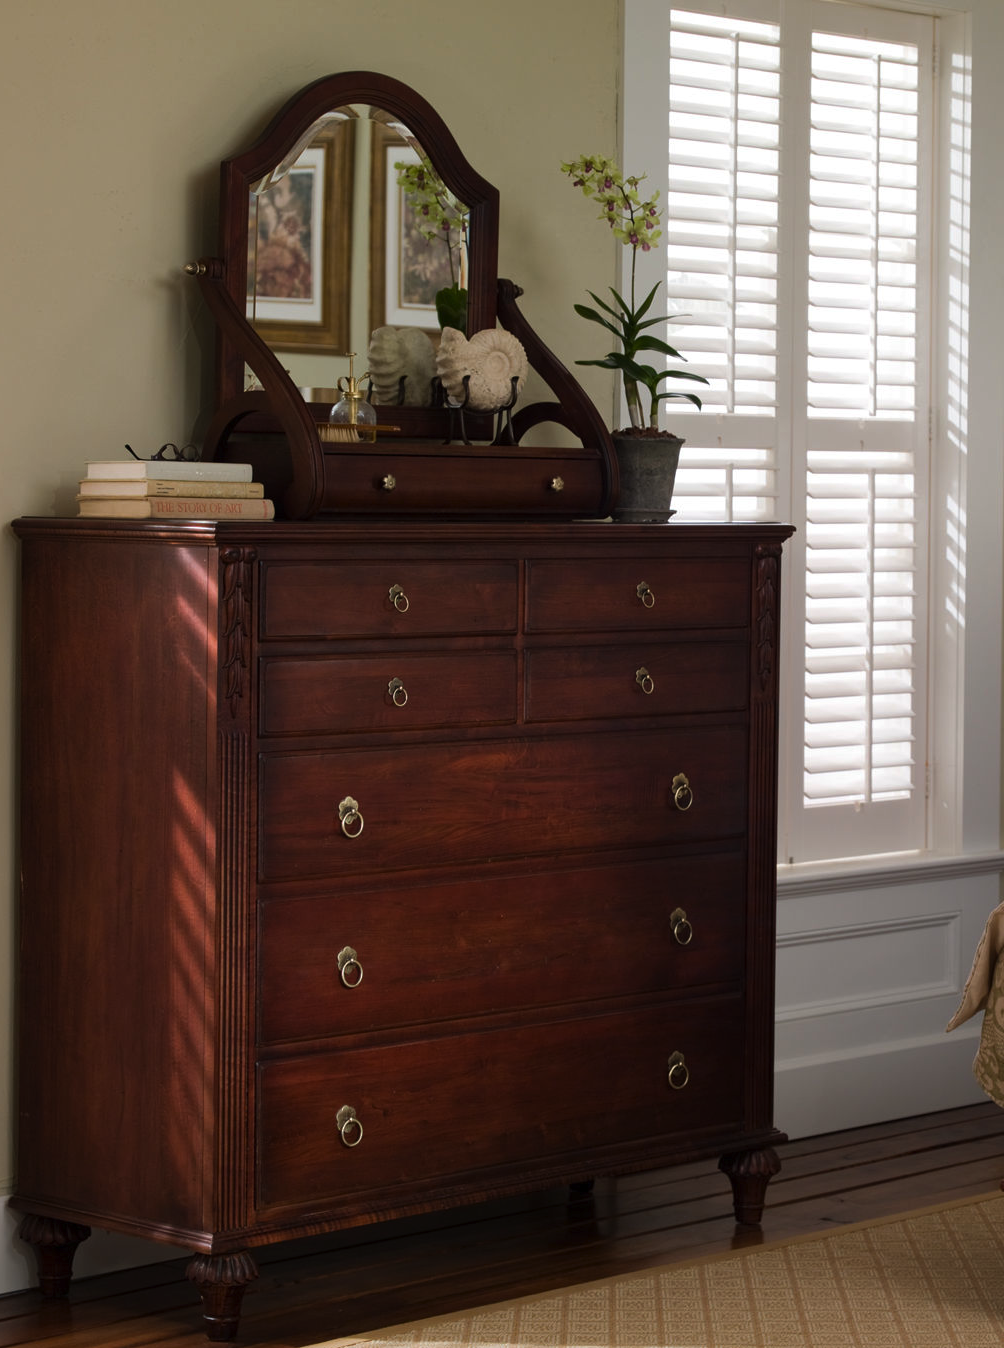 British Classics Just like ours from Ethan Allen D